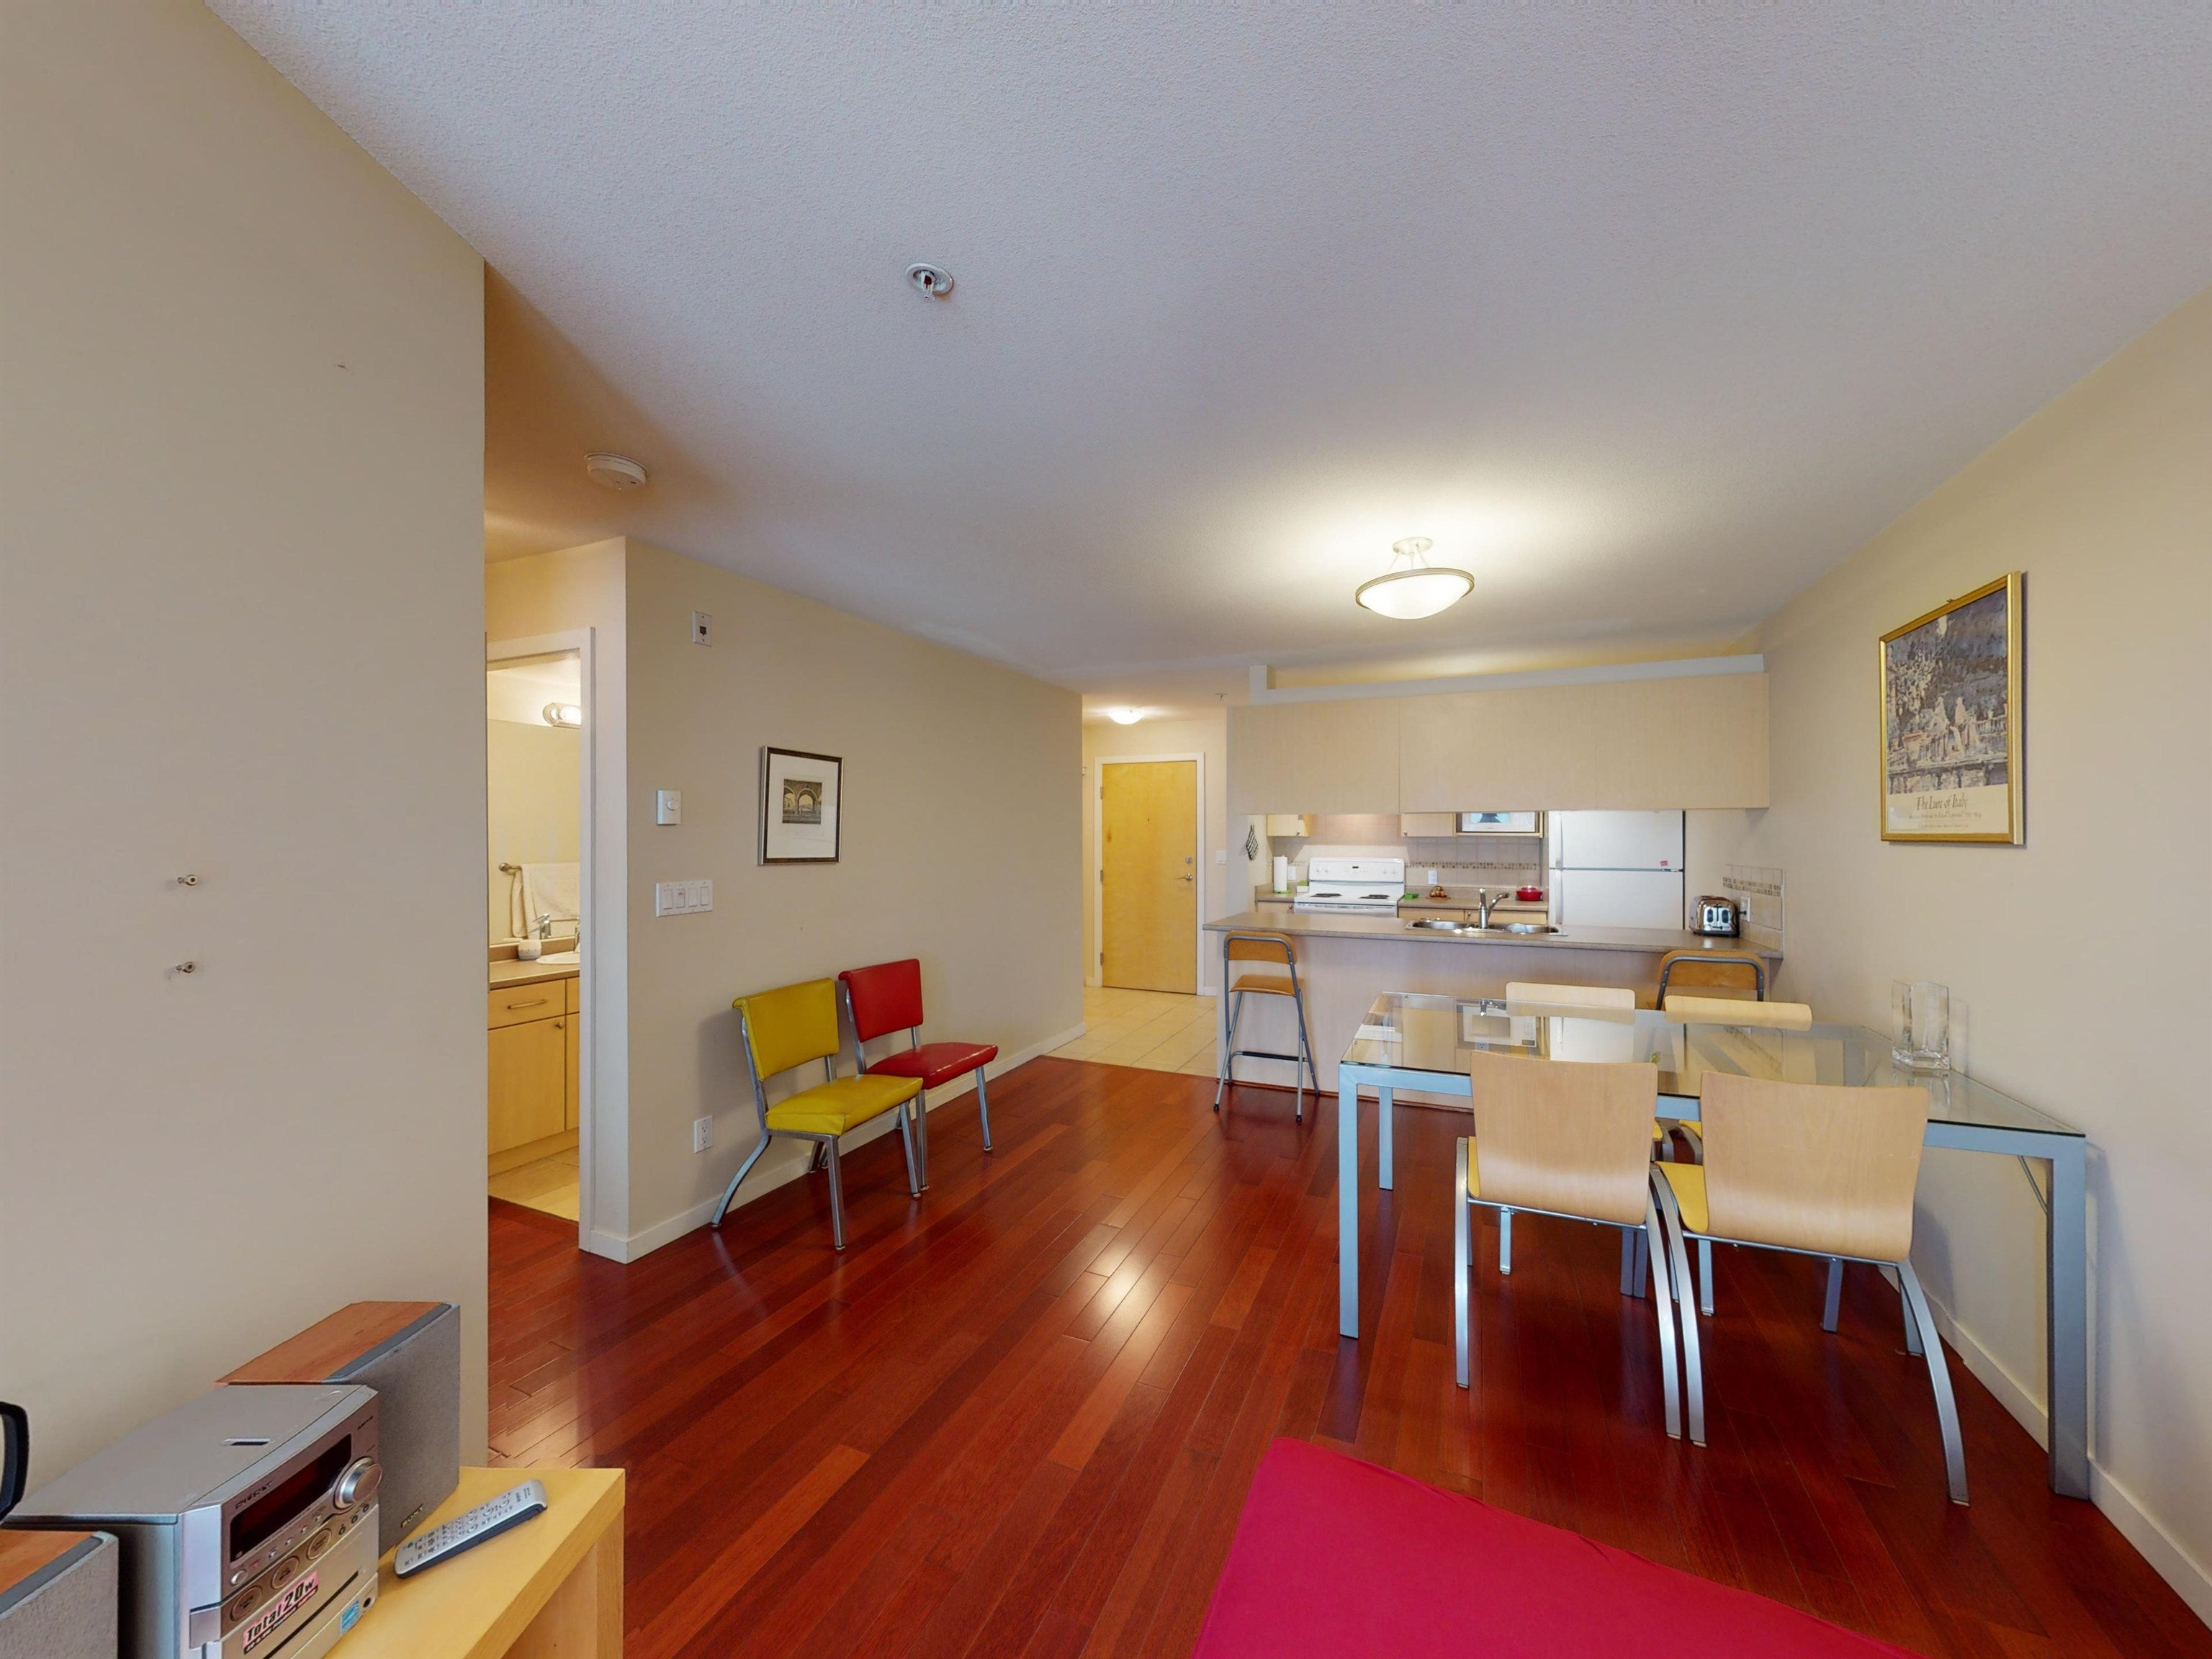 317 2891 E HASTINGS STREET - Hastings Apartment/Condo for sale, 1 Bedroom (R2615463) - #7